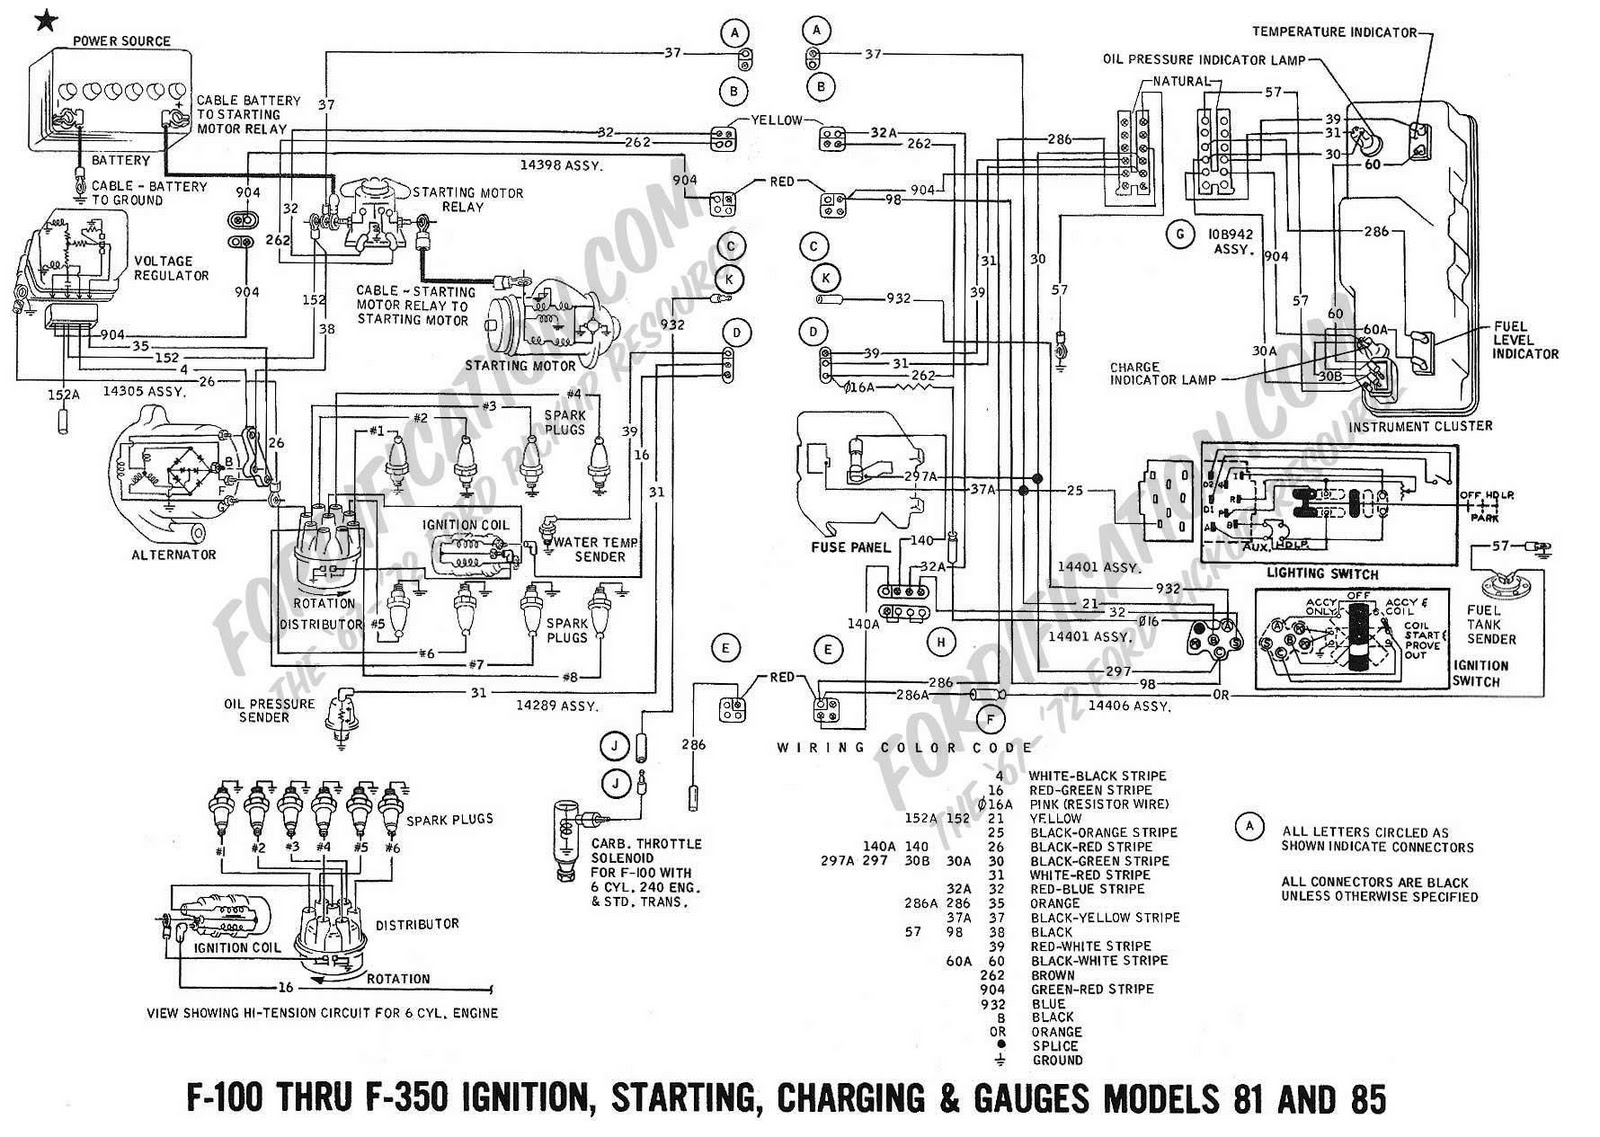 1969 ford 302 alternator wiring diagram